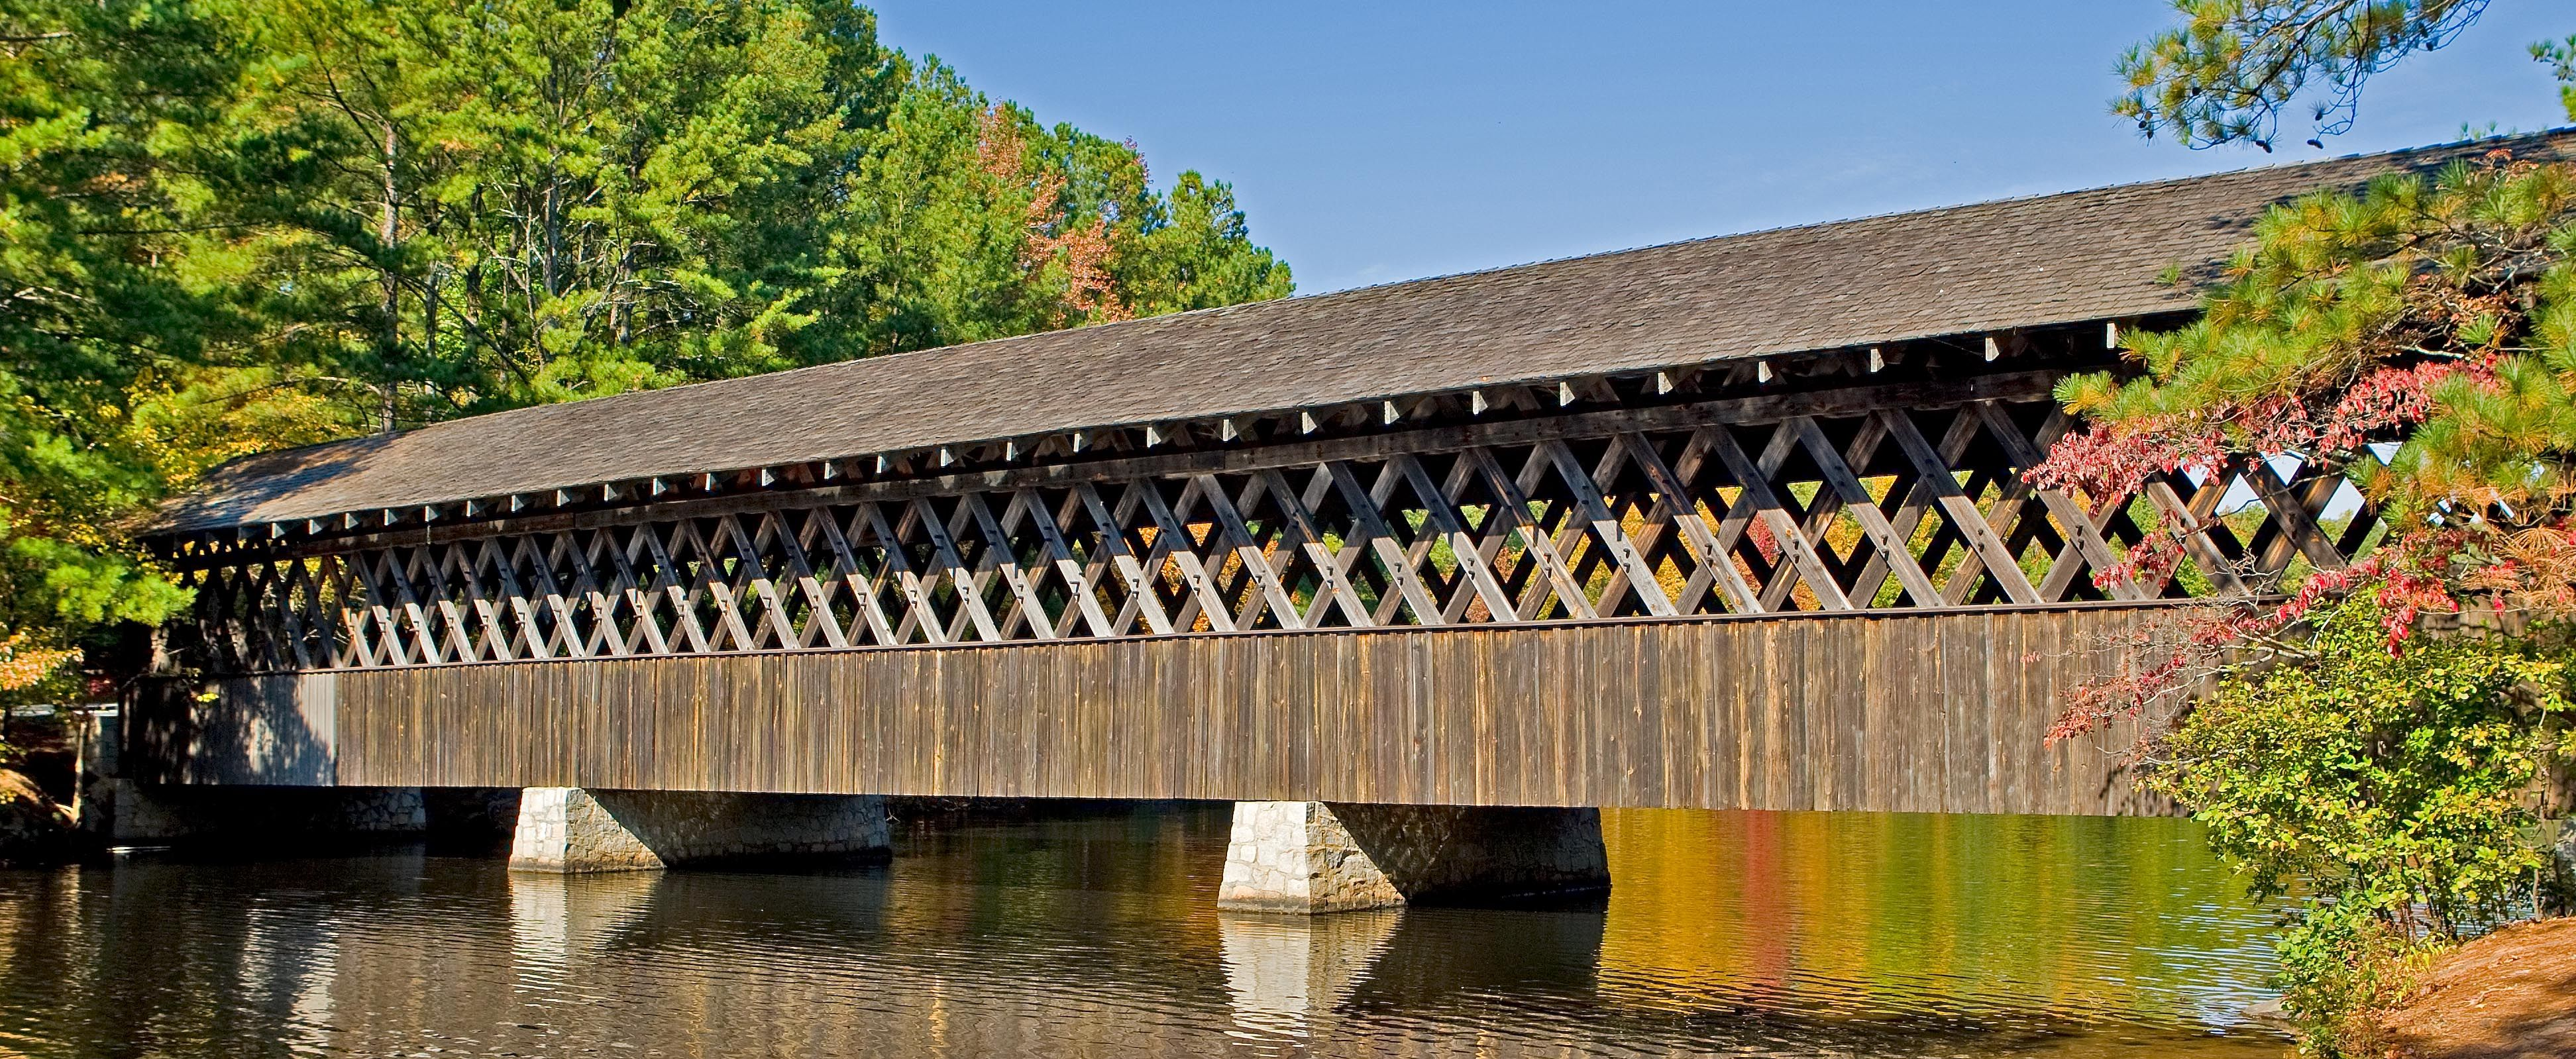 Covered Bridge at Stone Mountain, GA. Covered bridges